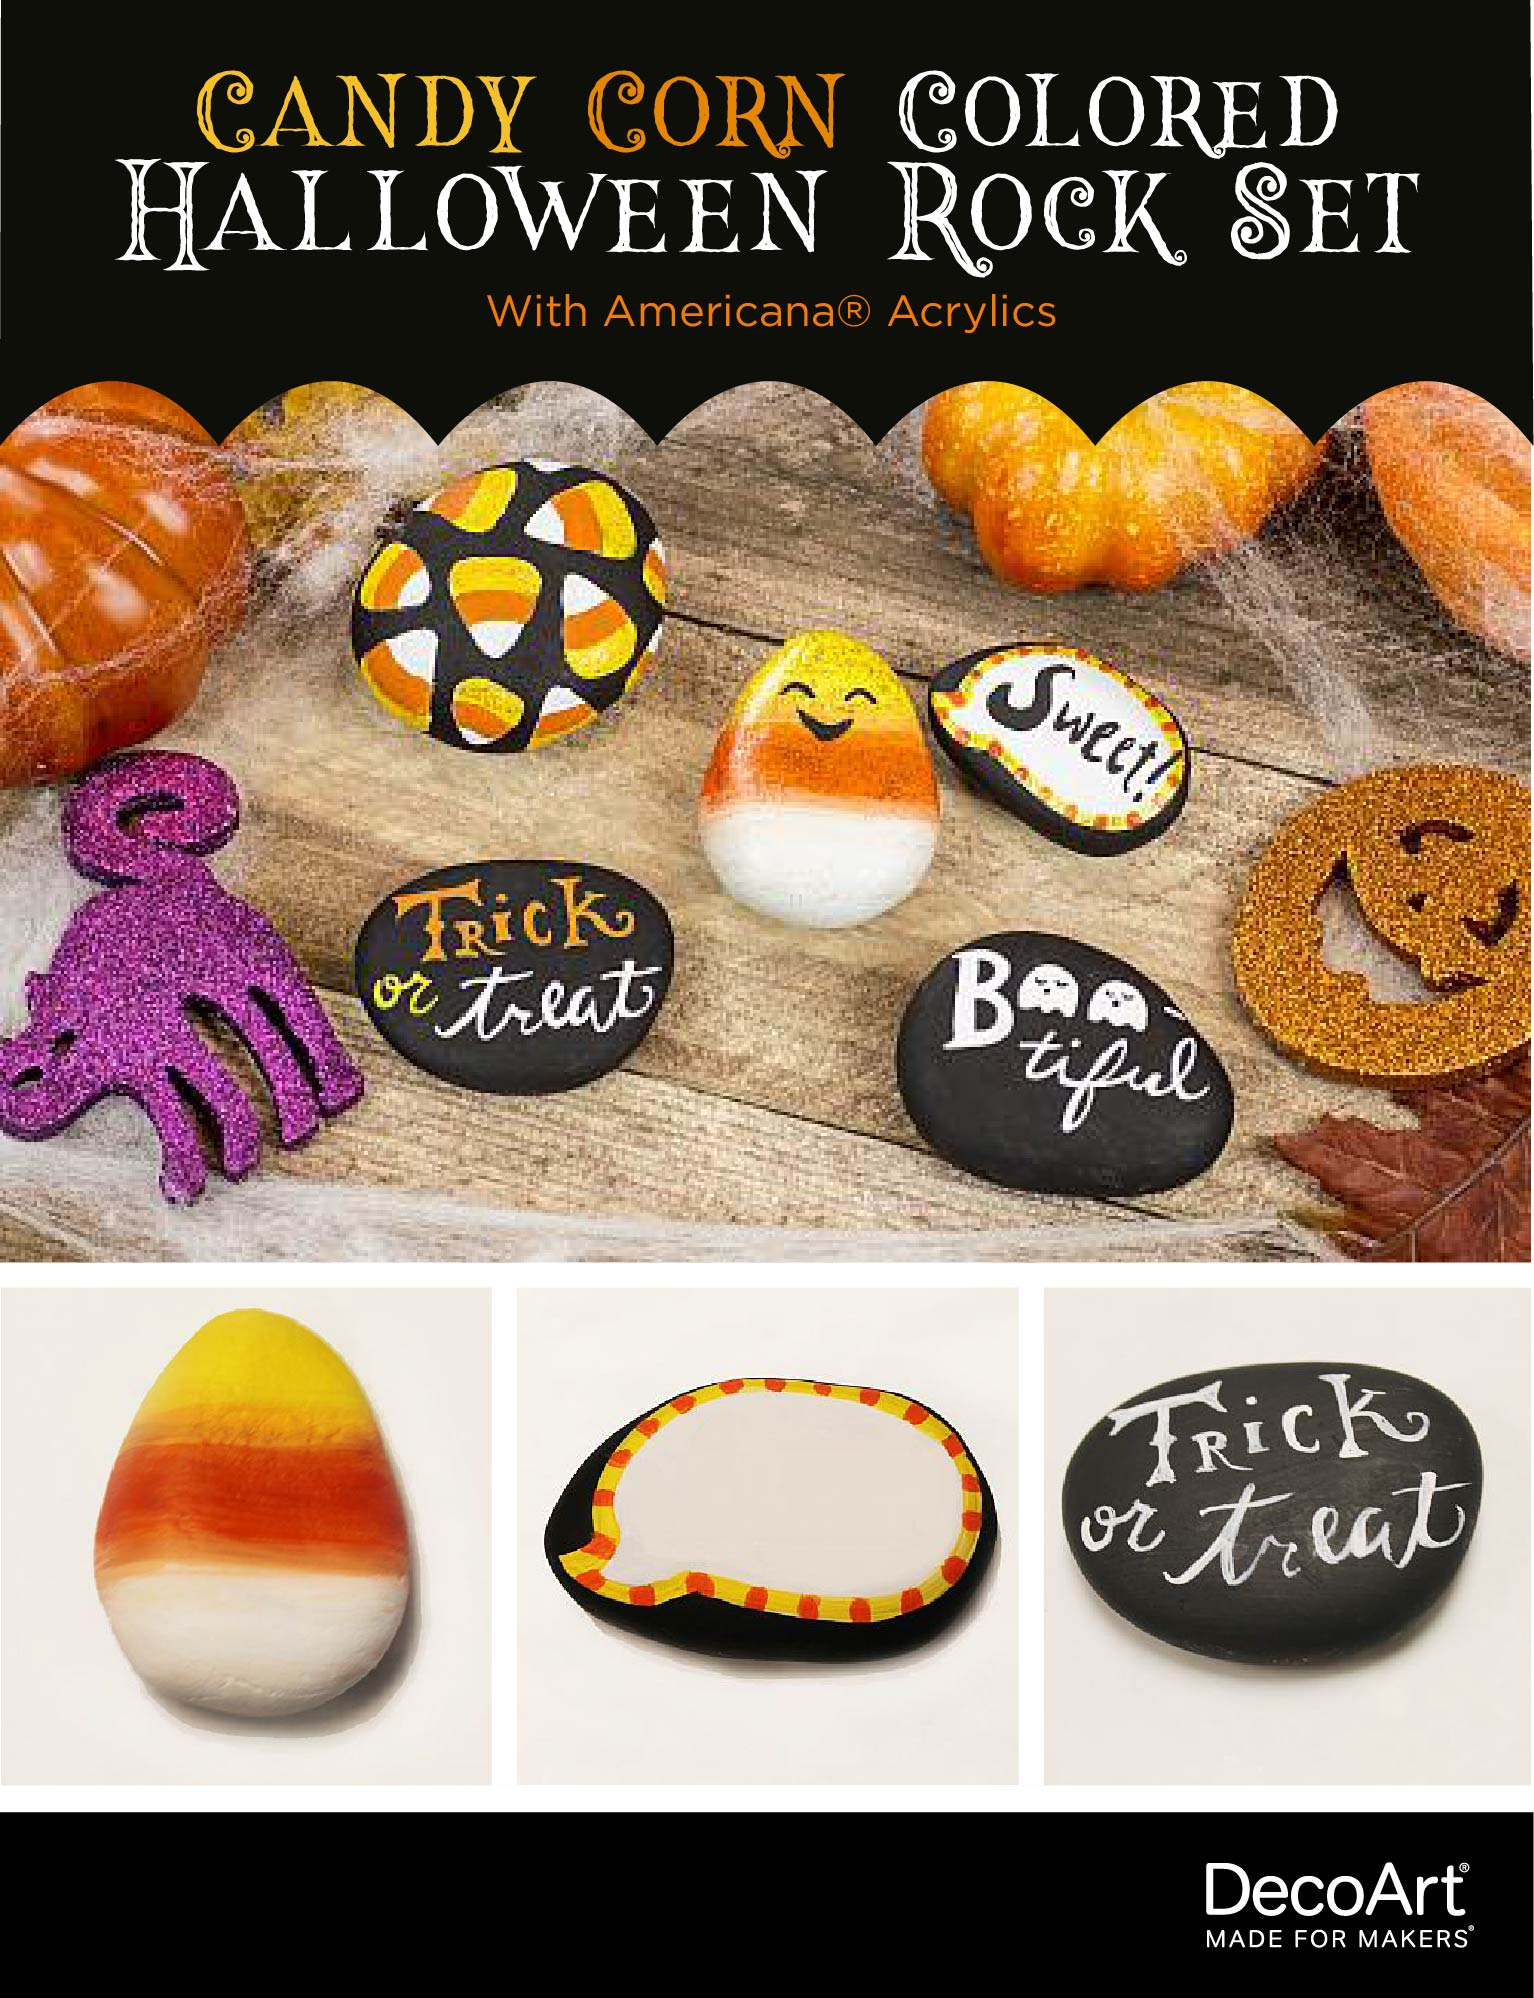 Candy Corn Colored Halloween Rock Set